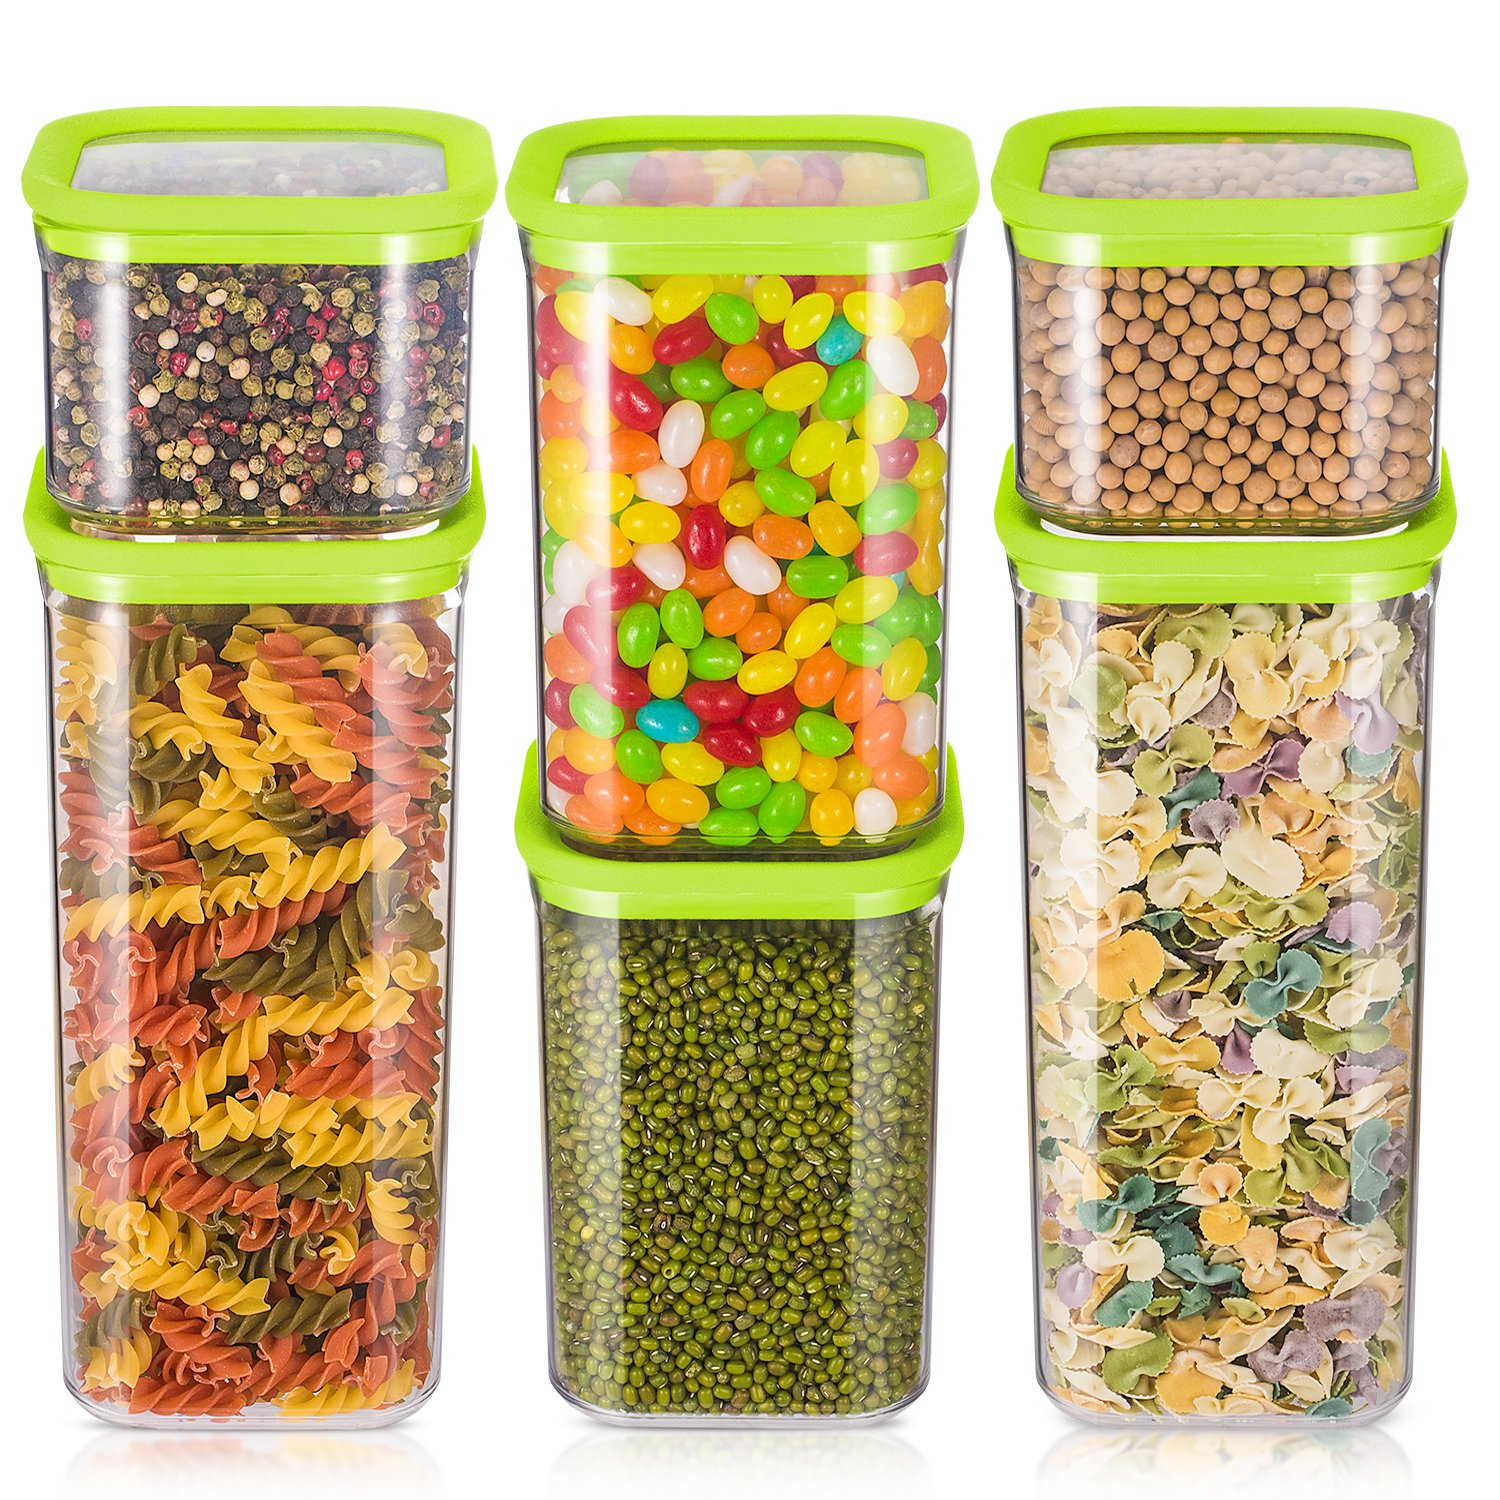 Amazon.com: ME.FAN Air-tight Food Storage Containers Set - 6 ...